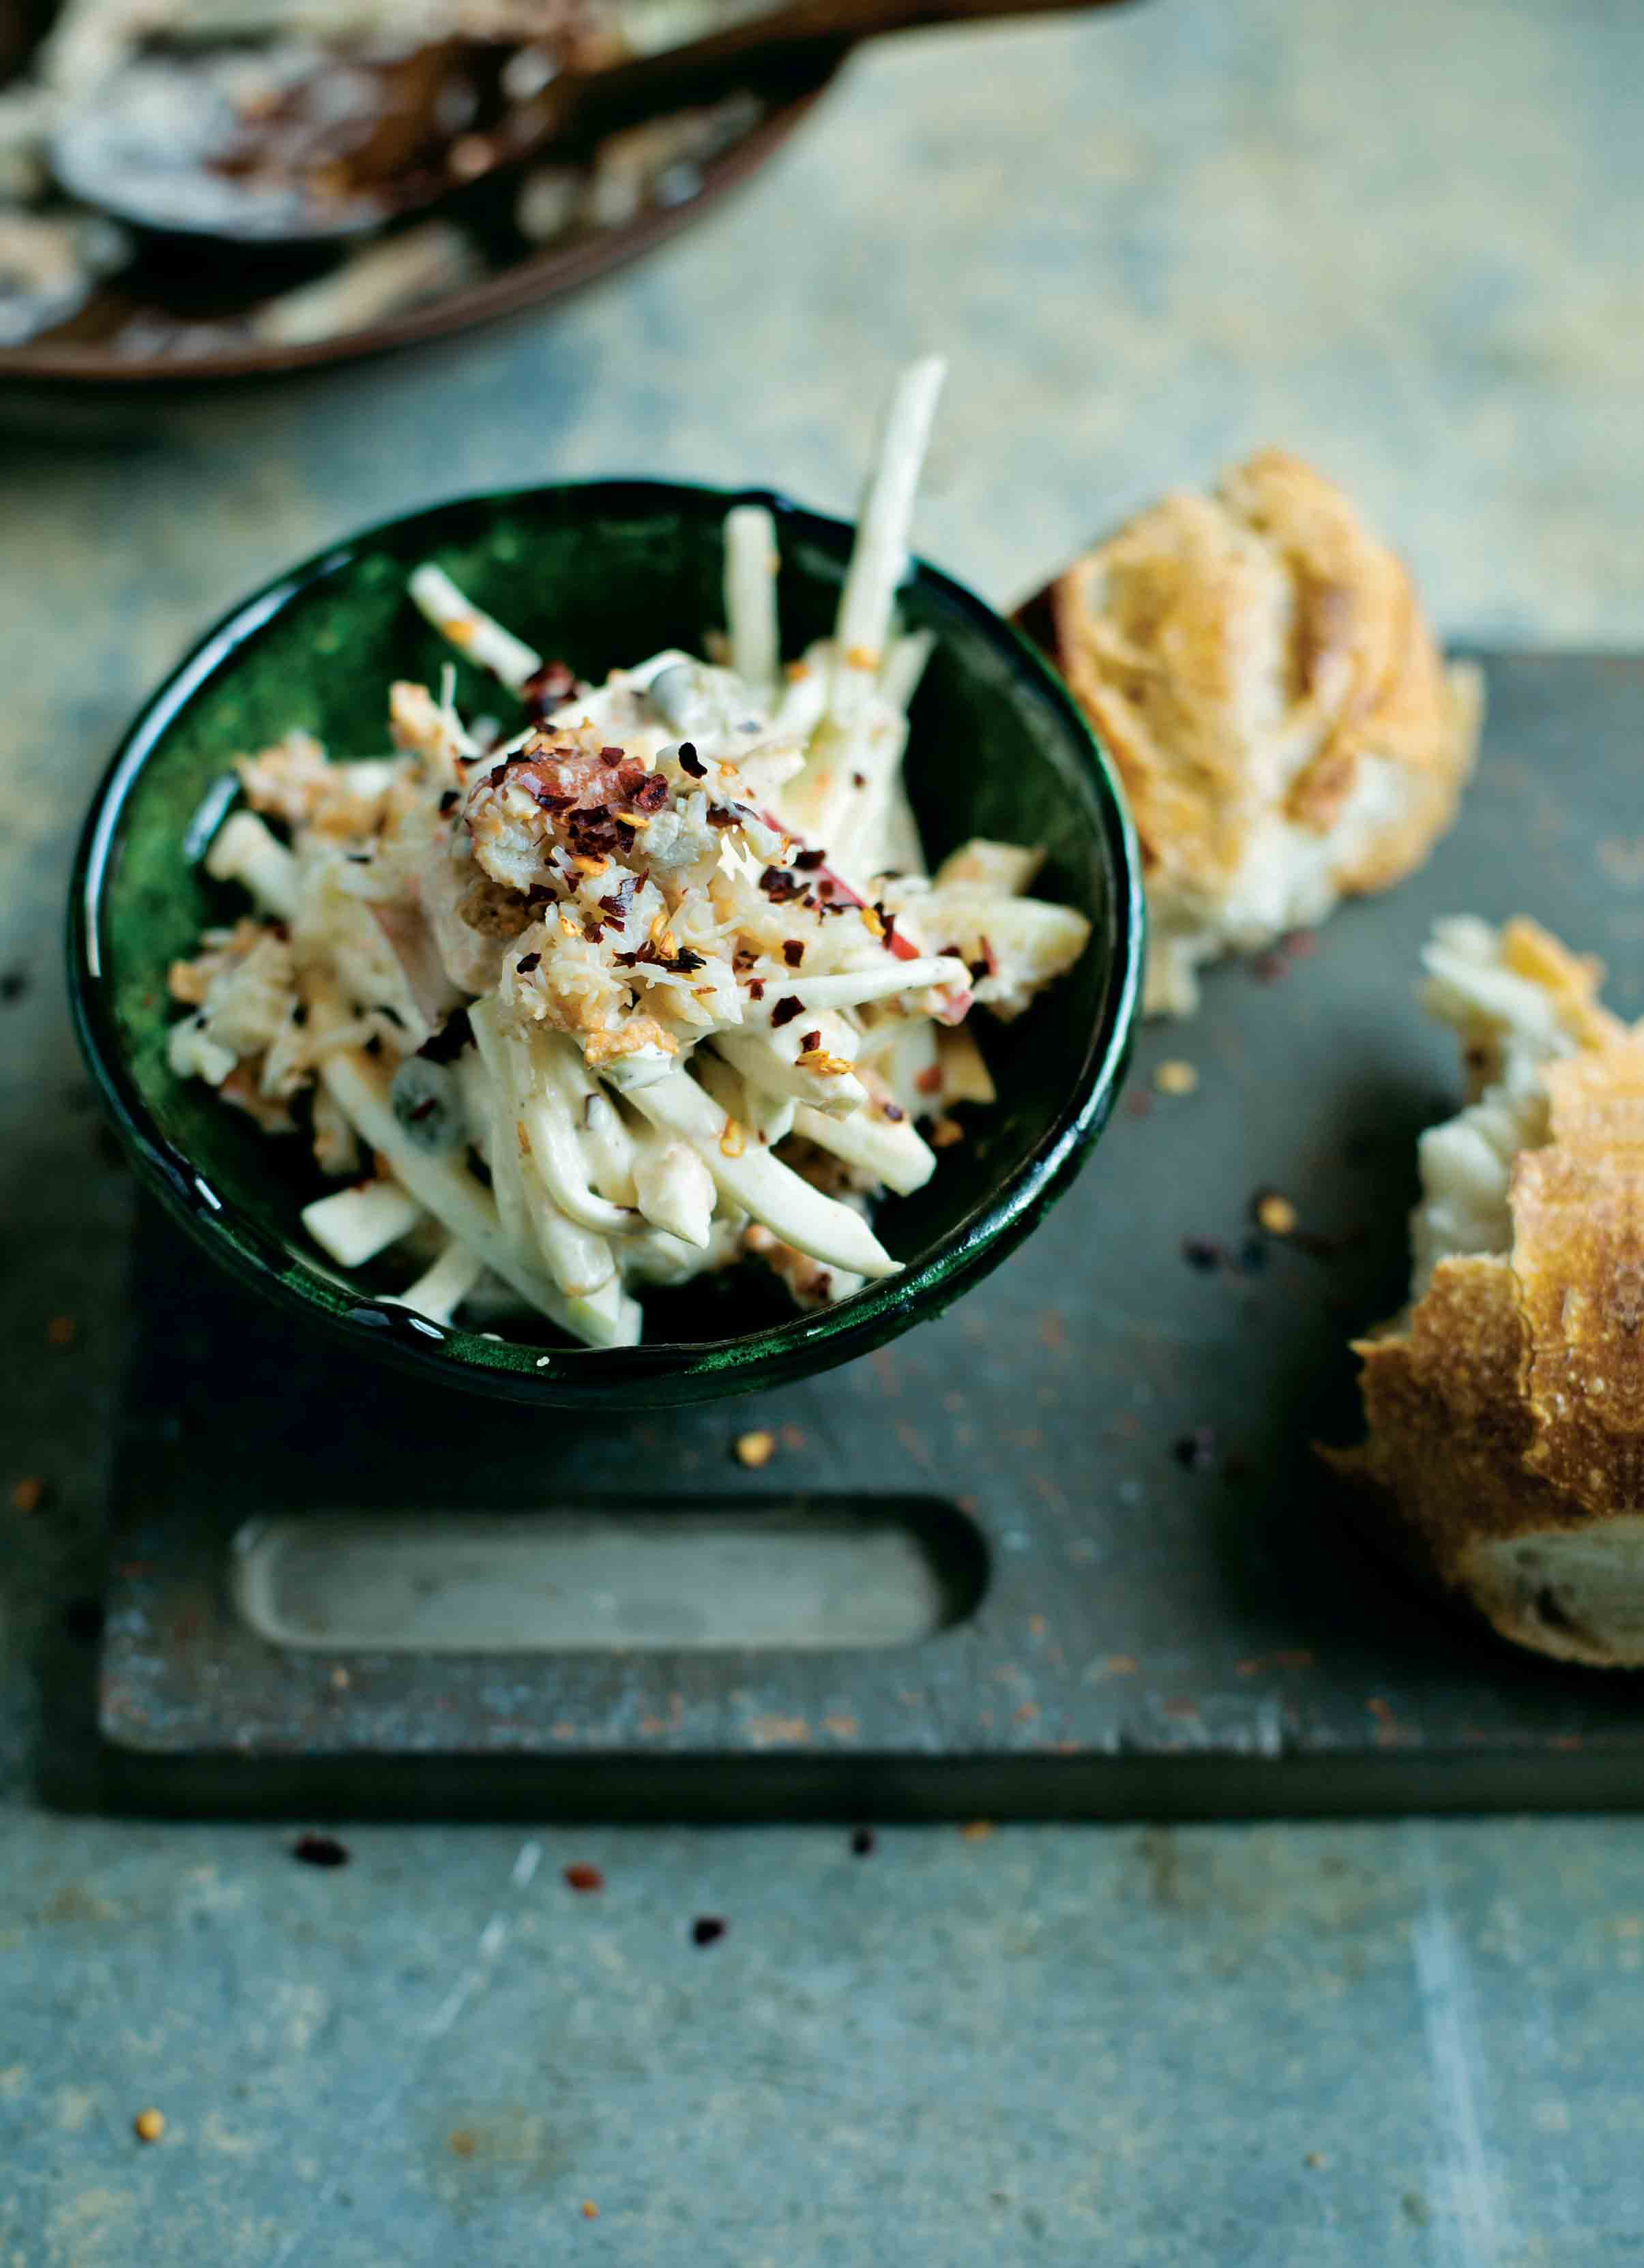 Celeriac and apple rémoulade with crab